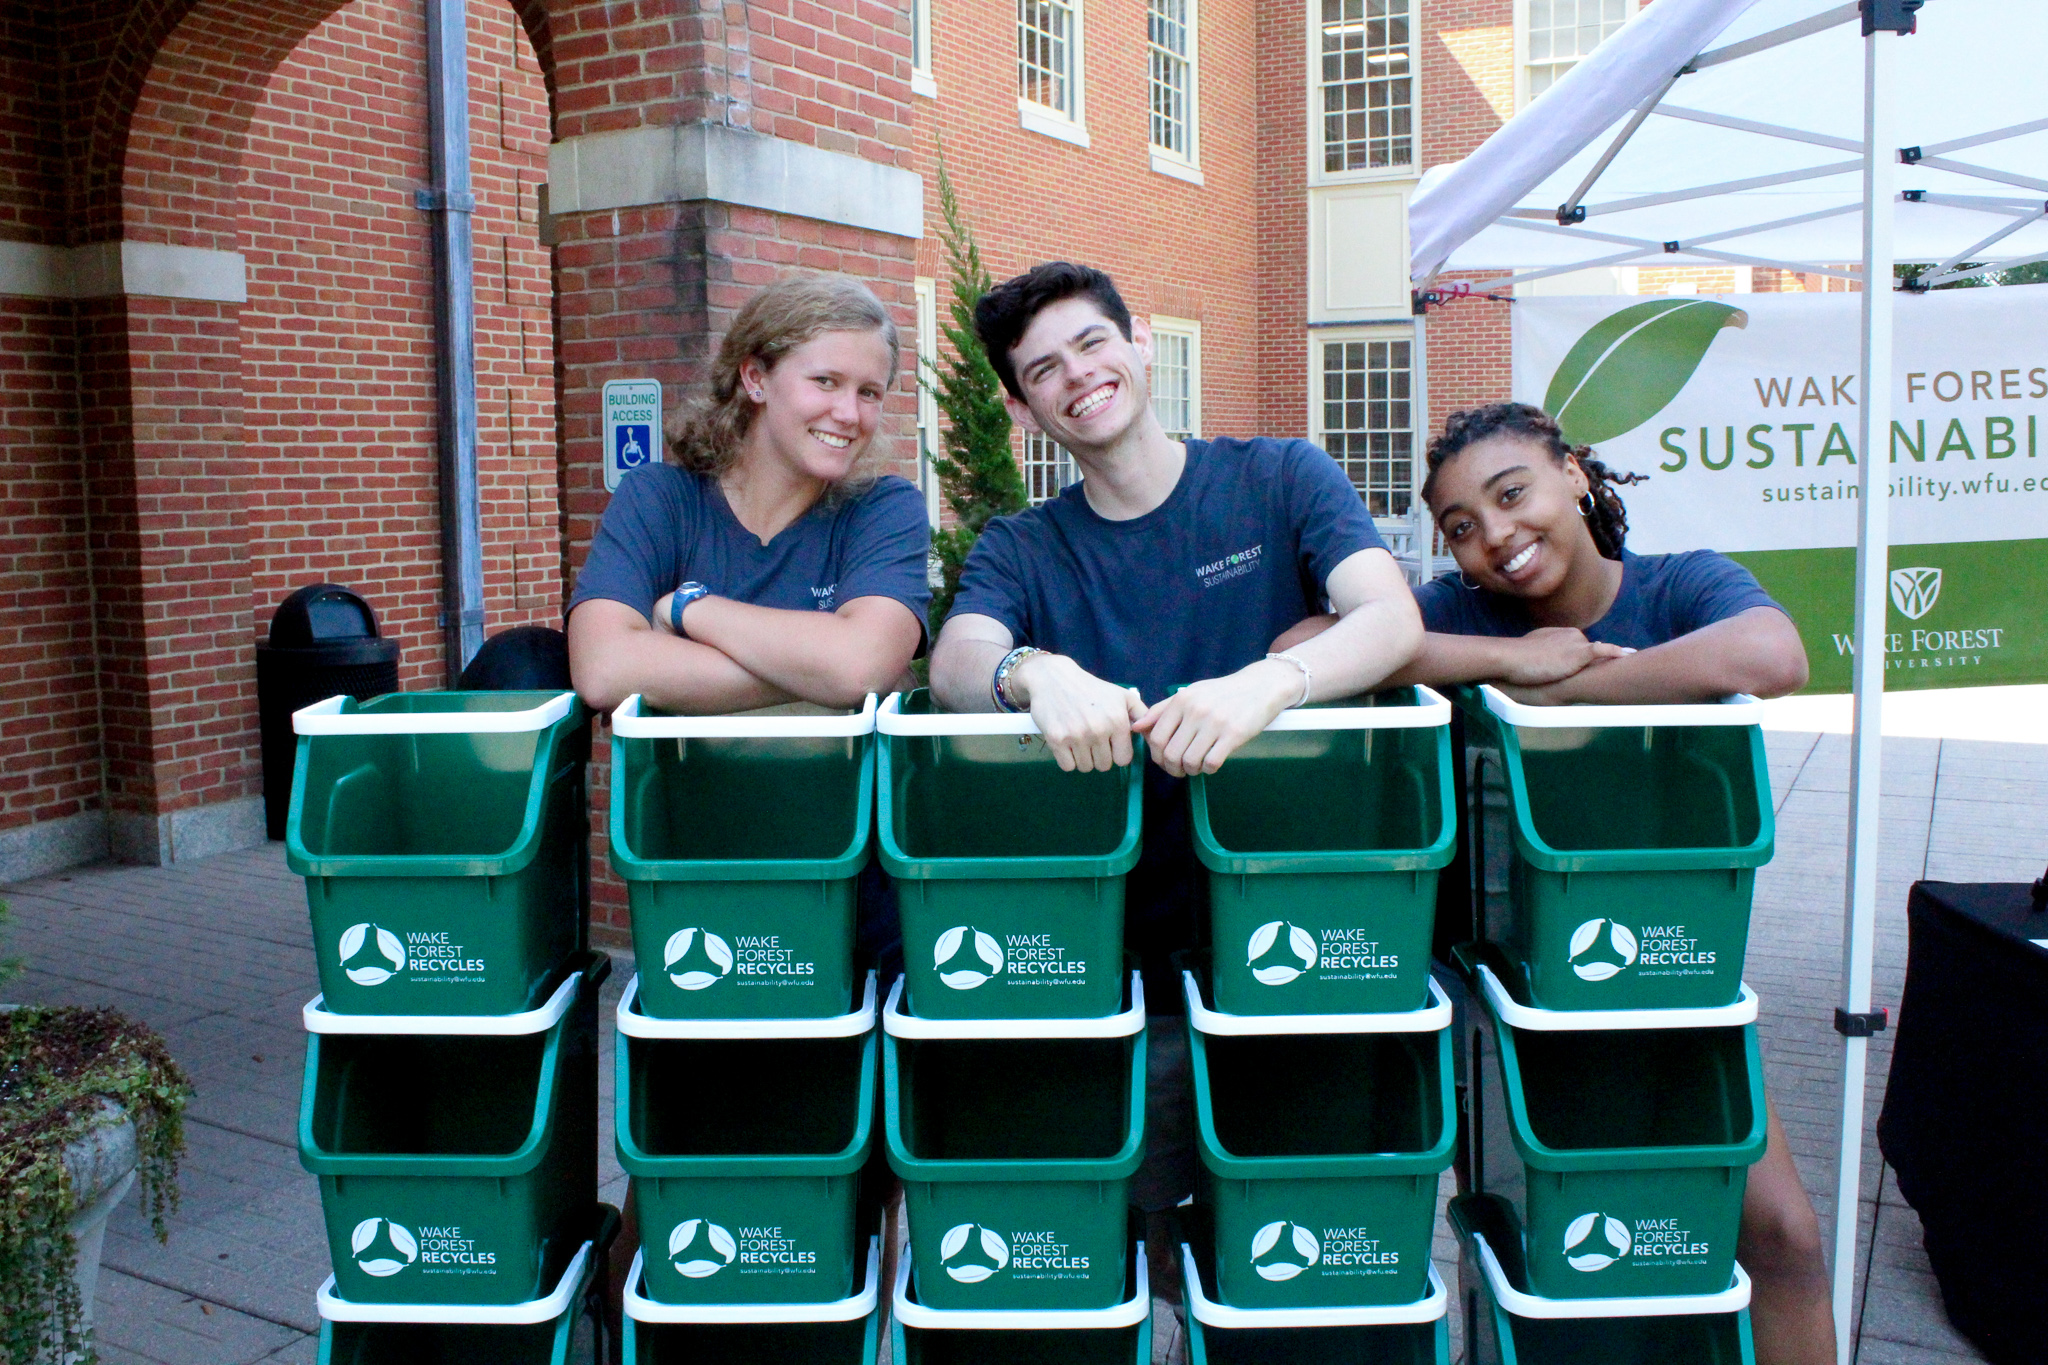 three students smiling at the stack of recycling bins